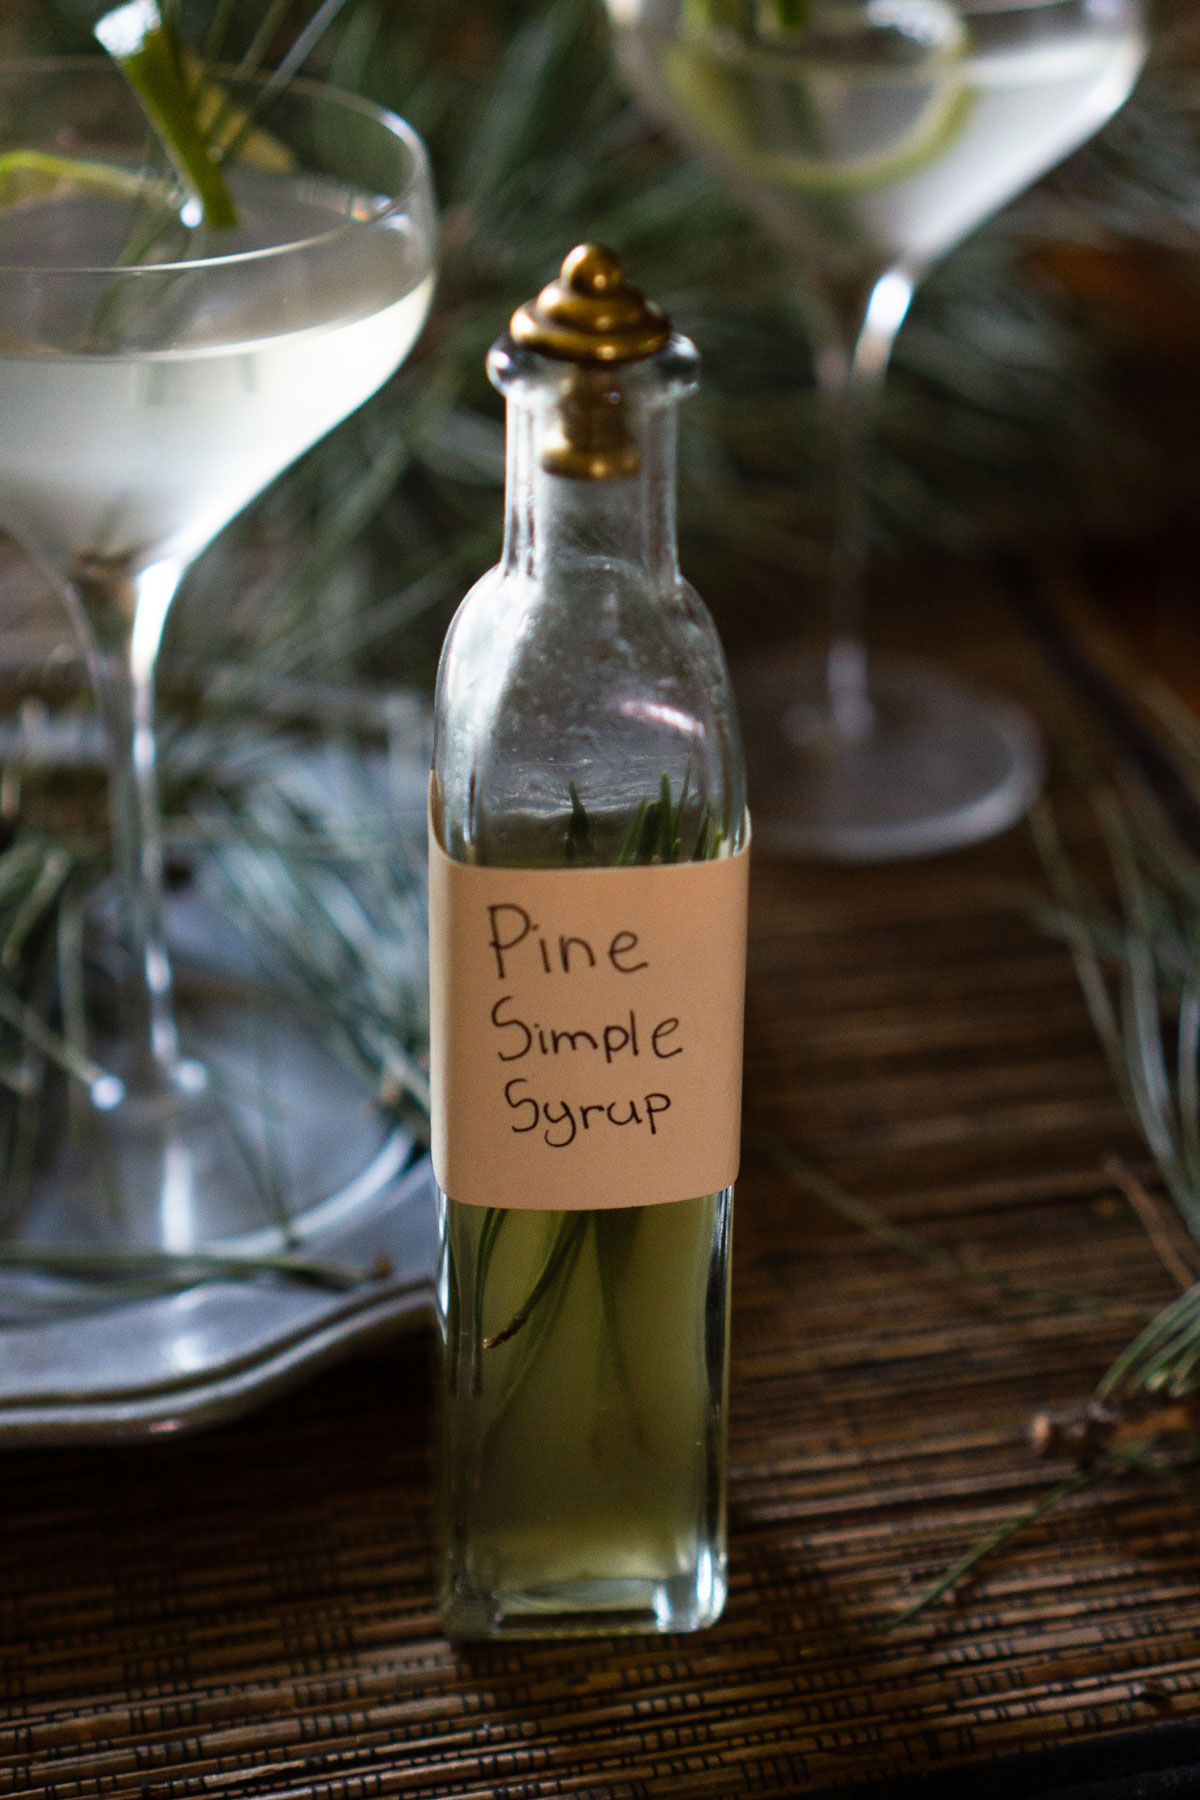 Pine needle simple syrup bottle on a table